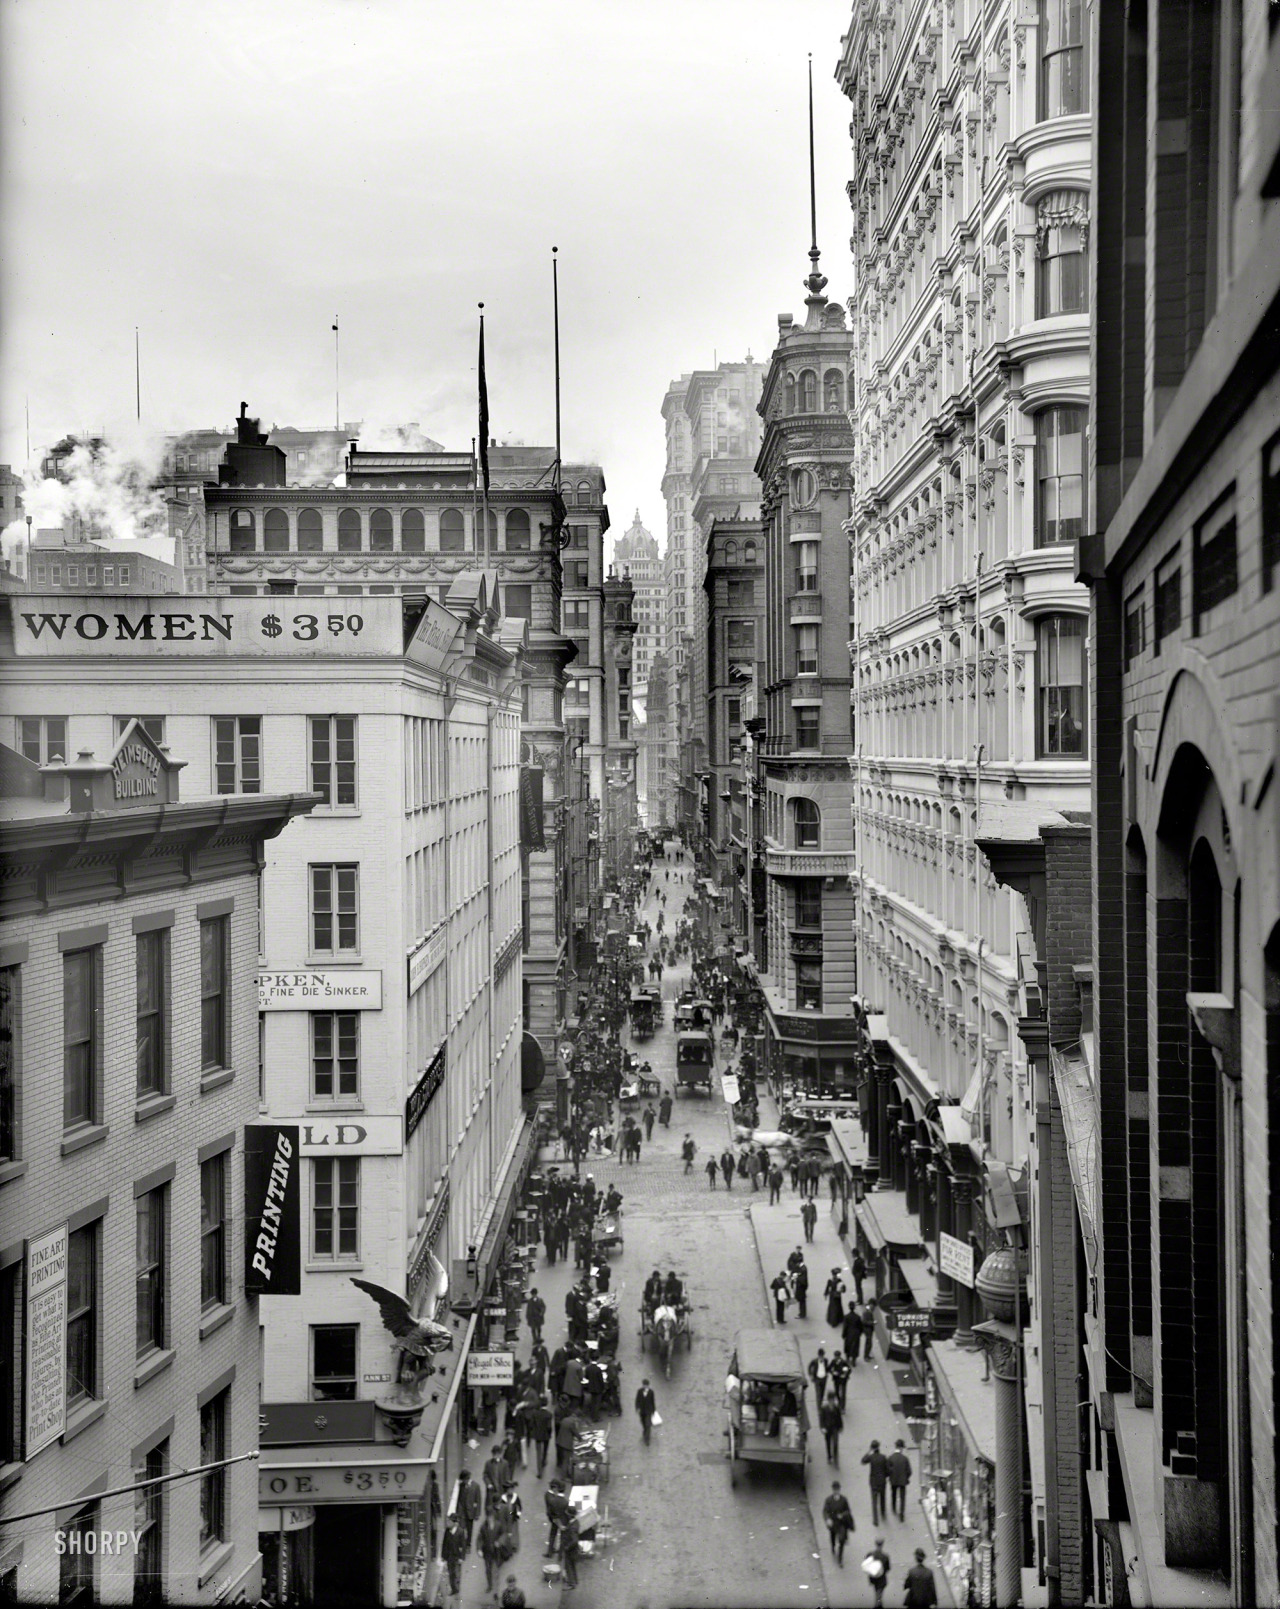 New York City, 1905 (via Shorpy Historical Photo Archive) Some curious signs, there.